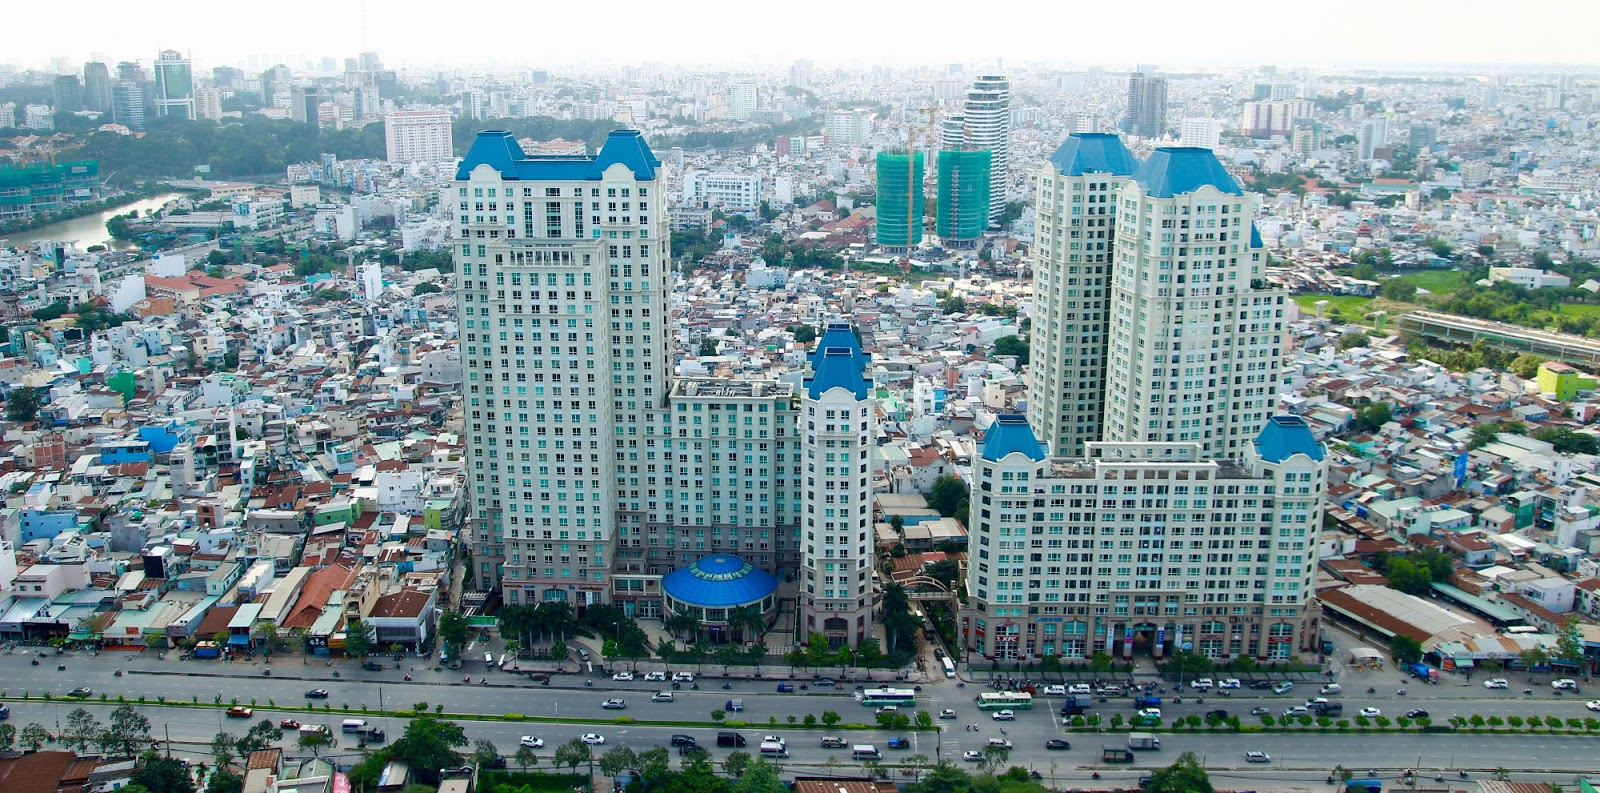 The Manor apartment is located on 91 Nguyen Huu Canh street, Binh Thanh district, Ho Chi Minh city